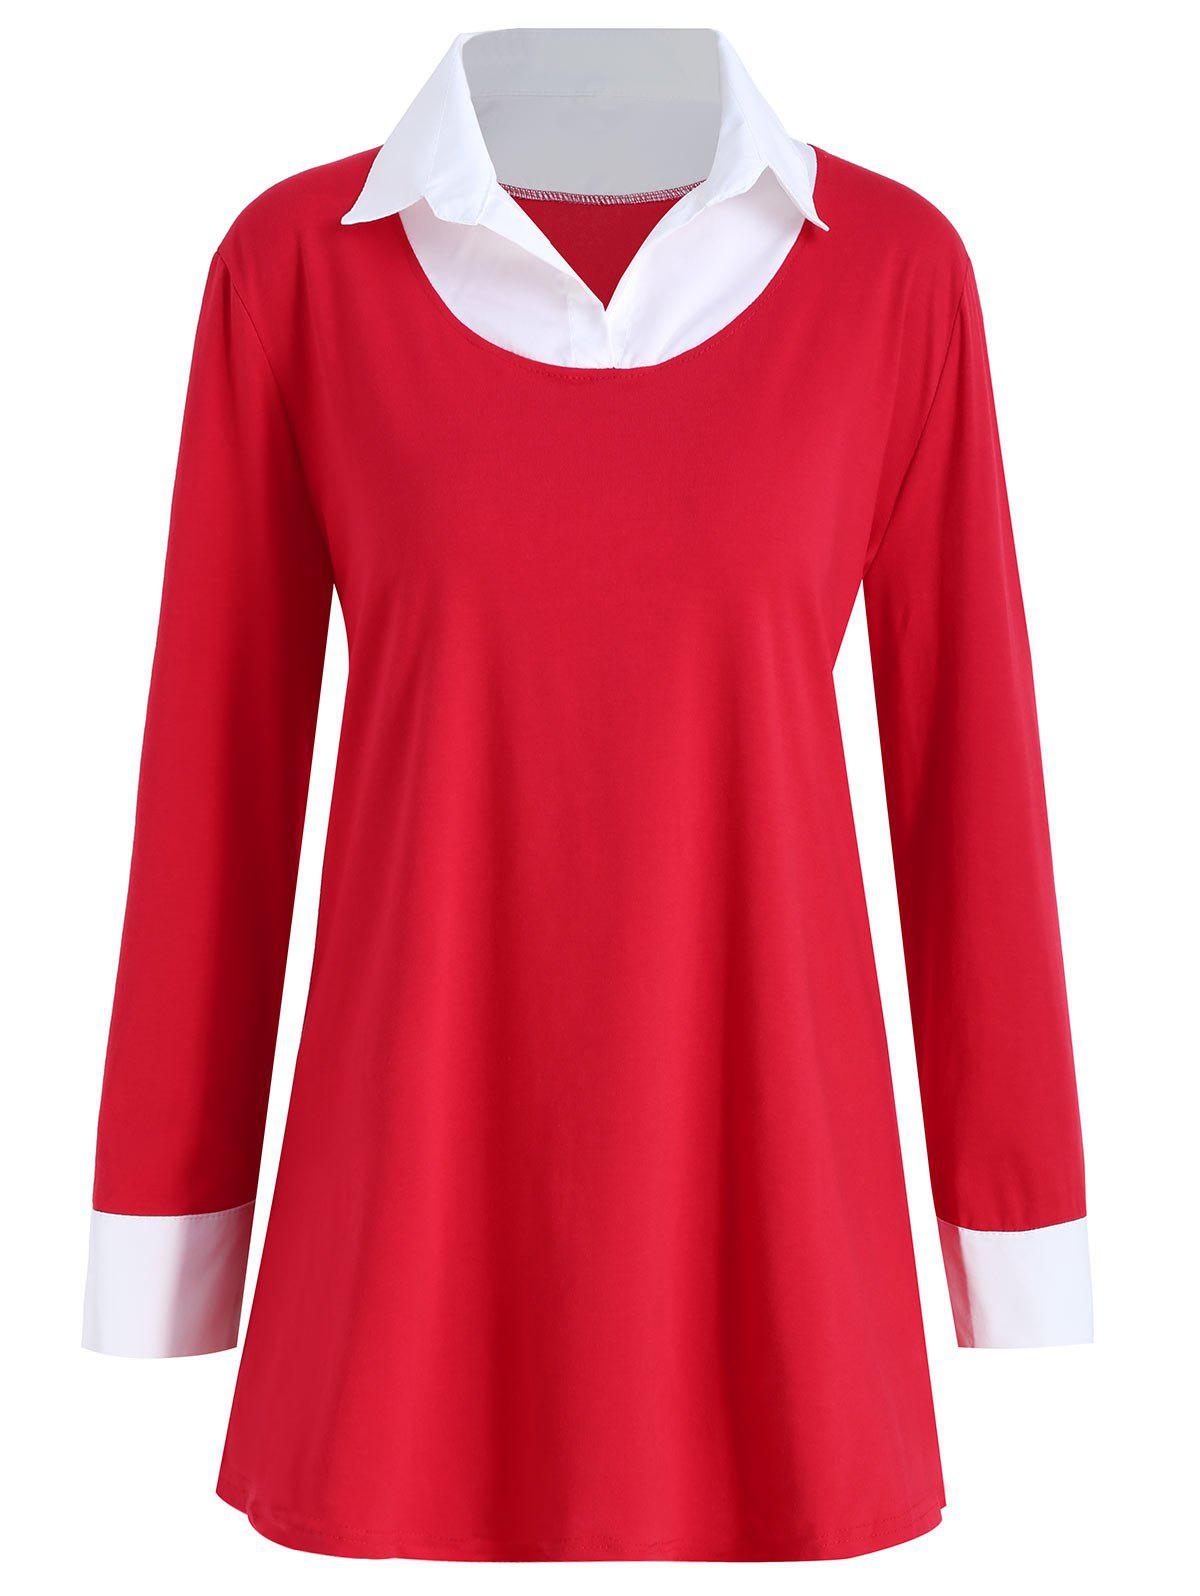 Two Tone Shirt Collar Plus Size TeeWOMEN<br><br>Size: 5XL; Color: RED; Material: Cotton,Polyester; Shirt Length: Long; Sleeve Length: Full; Collar: Shirt Collar; Style: Fashion; Season: Fall; Pattern Type: Others; Weight: 0.2950kg; Package Contents: 1 x T-shirt;